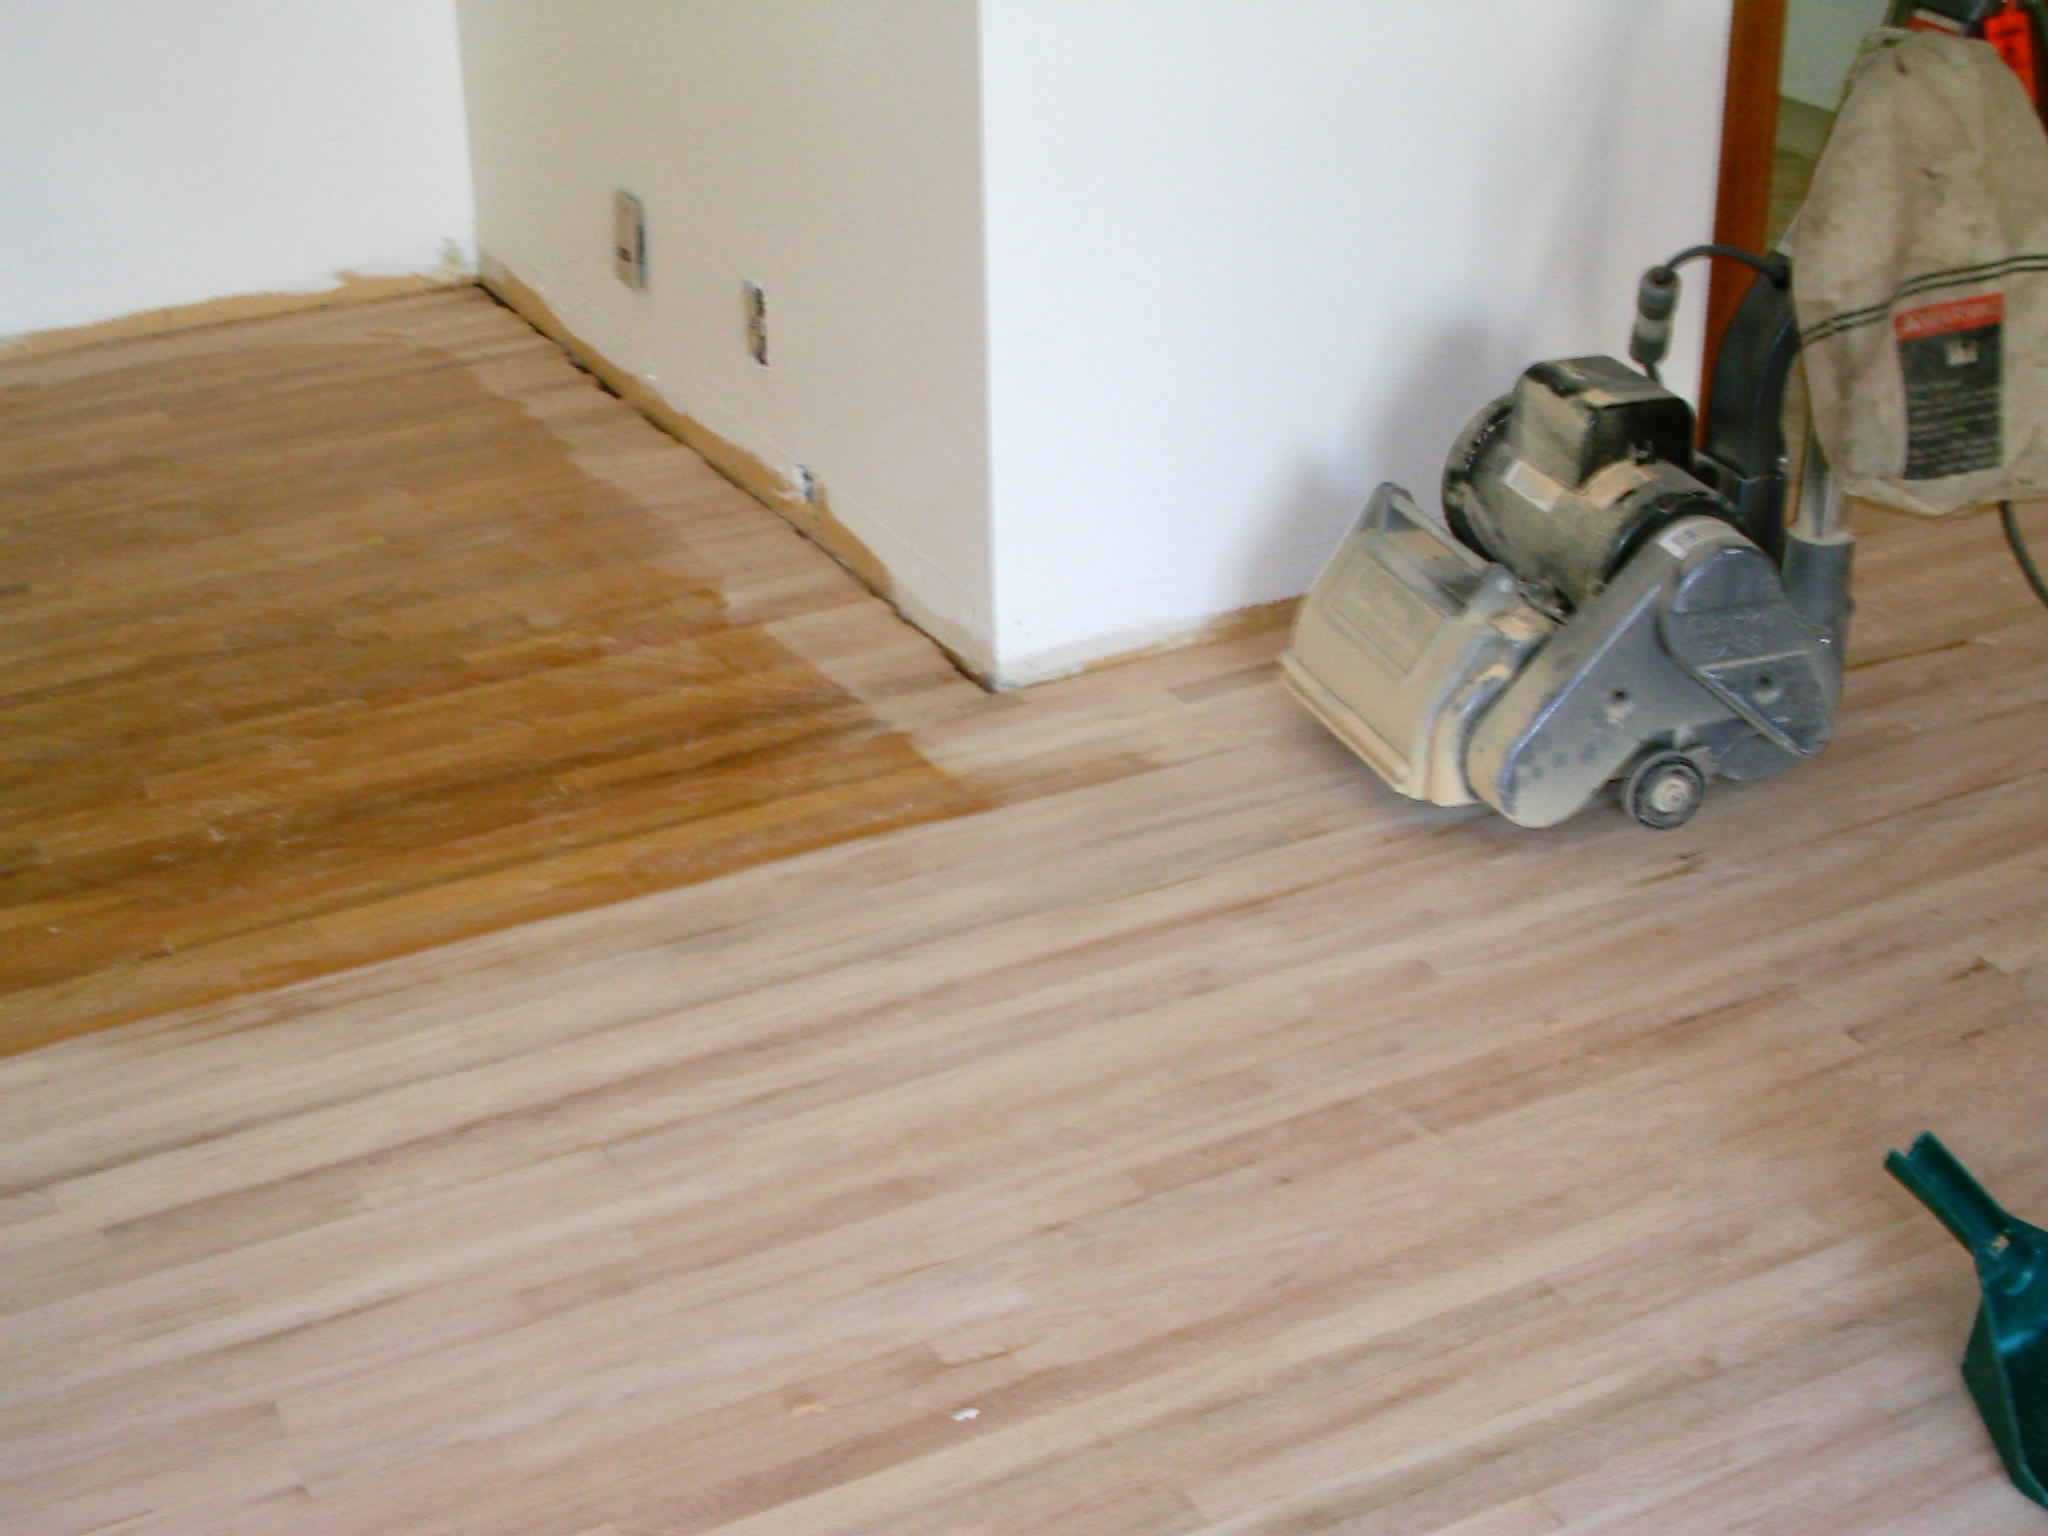 Stripping Wood Floors Without Sanding